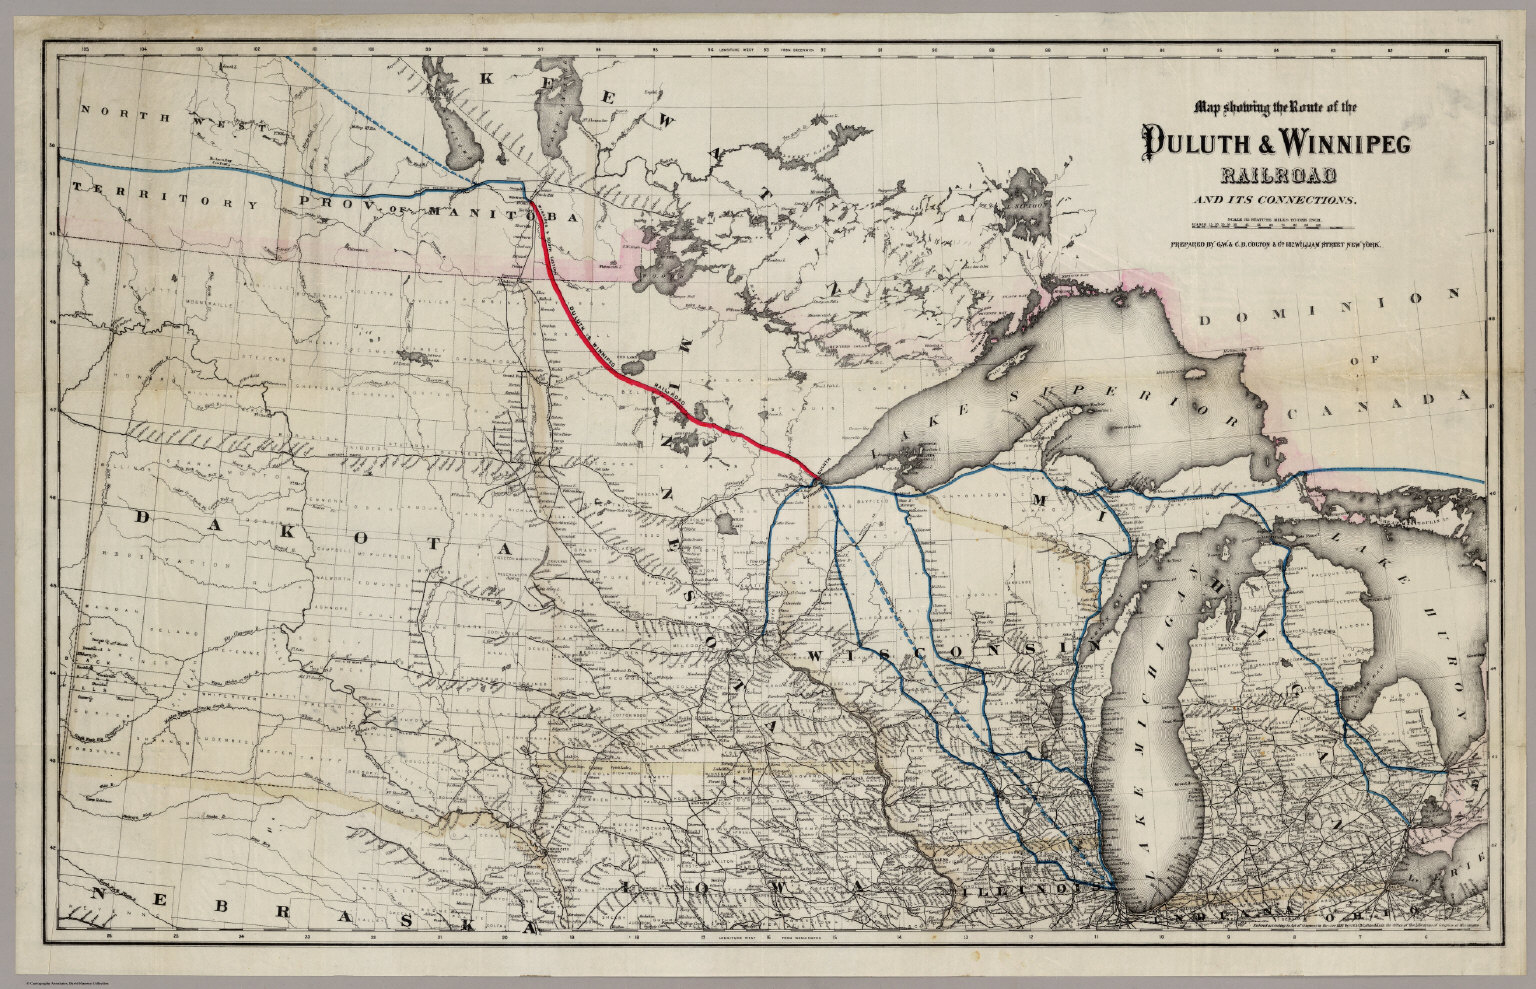 Route of the Duluth & Winnipeg Railroad